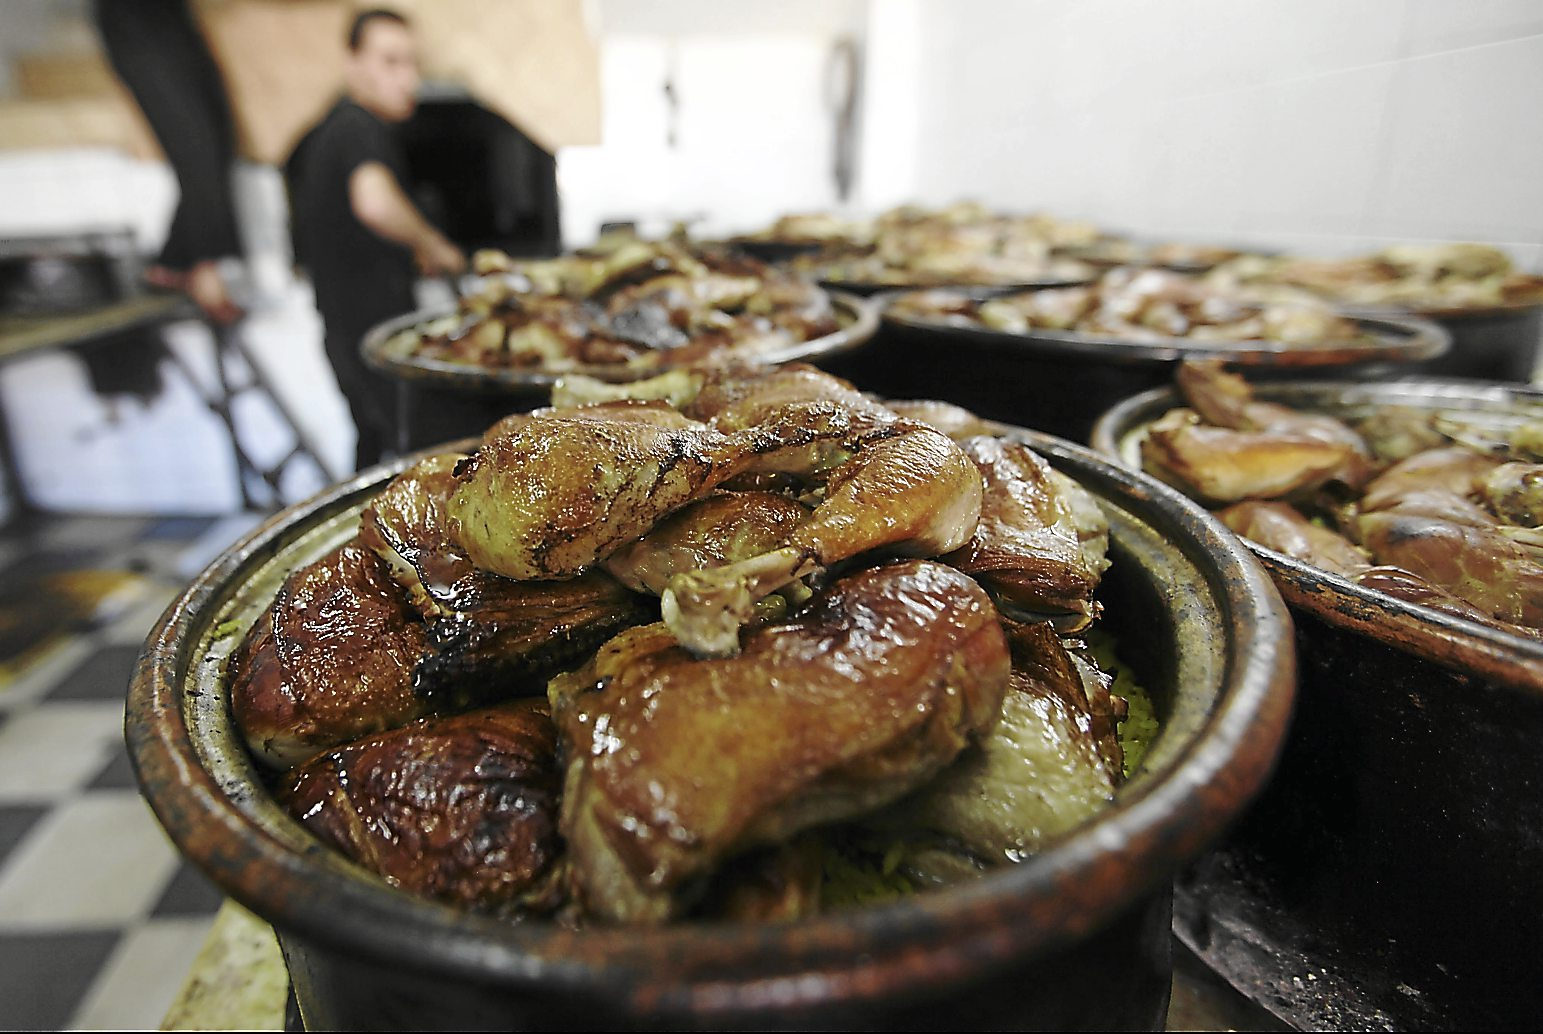 Aromatic dish: A Palestinian man prepares a traditional festive dish known as Qidra at a bakery before the Iftar meal in the West Bank city of Hebron. The dish, which dates back to the courts of Persia, contains rice and meat or chicken and is cooked in a wood-fired oven. In it, there is a standard mix of spices and abundant cloves of unpeeled garlic. - EPA